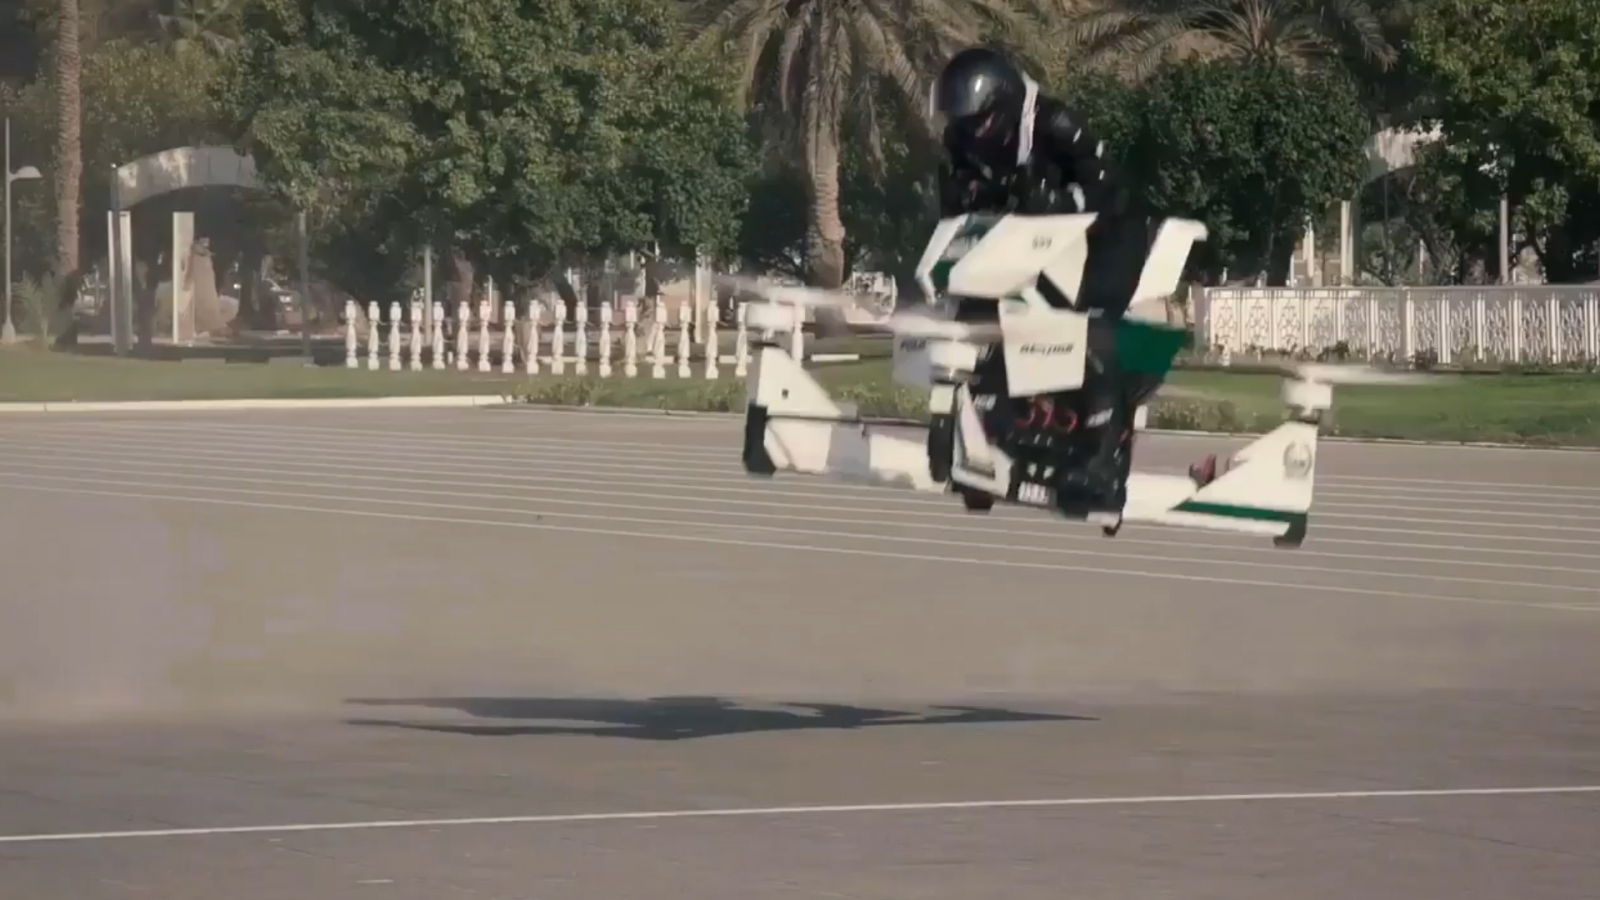 Star Wars Style Flying Bikes To Be Used By Cops In Dubai